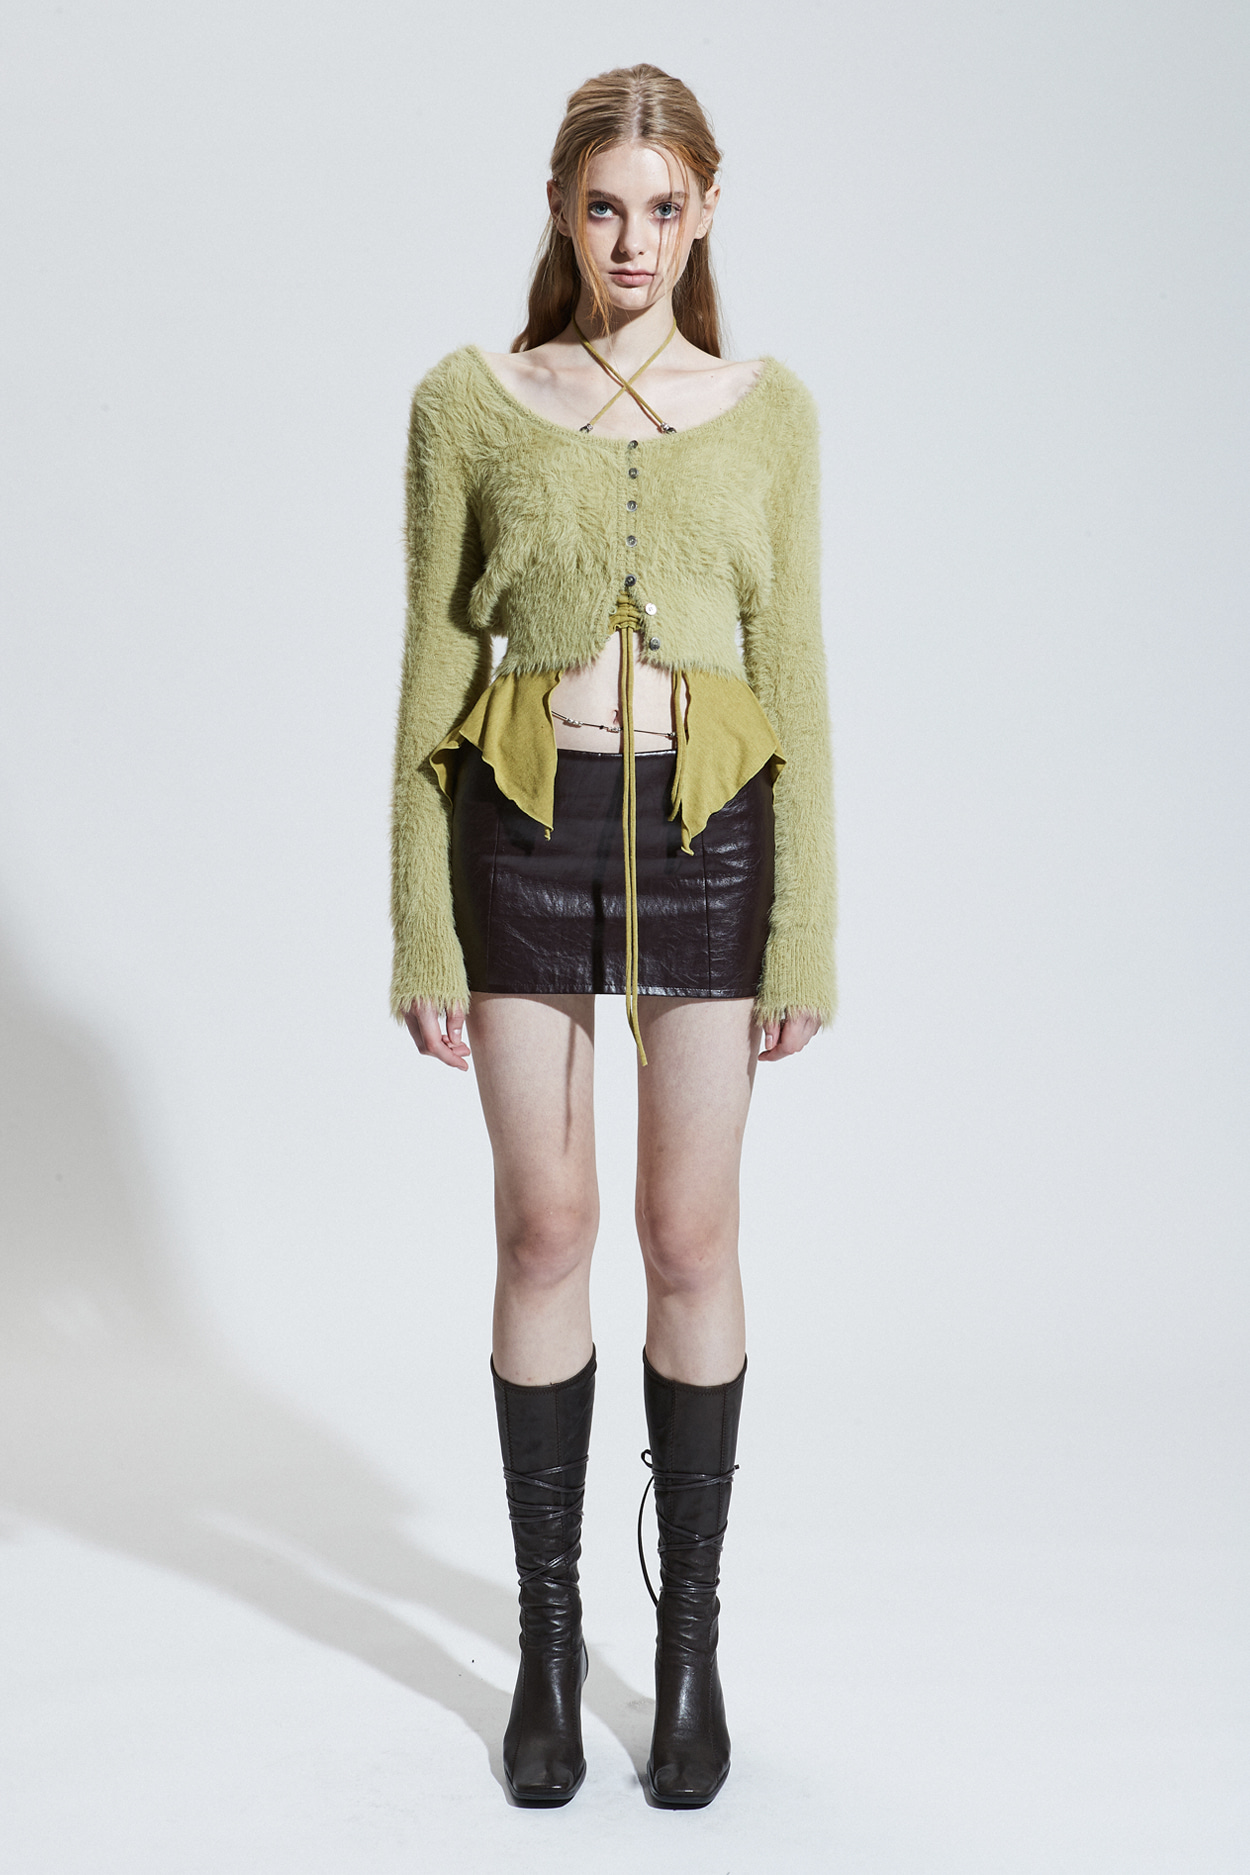 LOW-RISE MINI SKIRT_leather brown [Oct.15th Pre-order delivery]